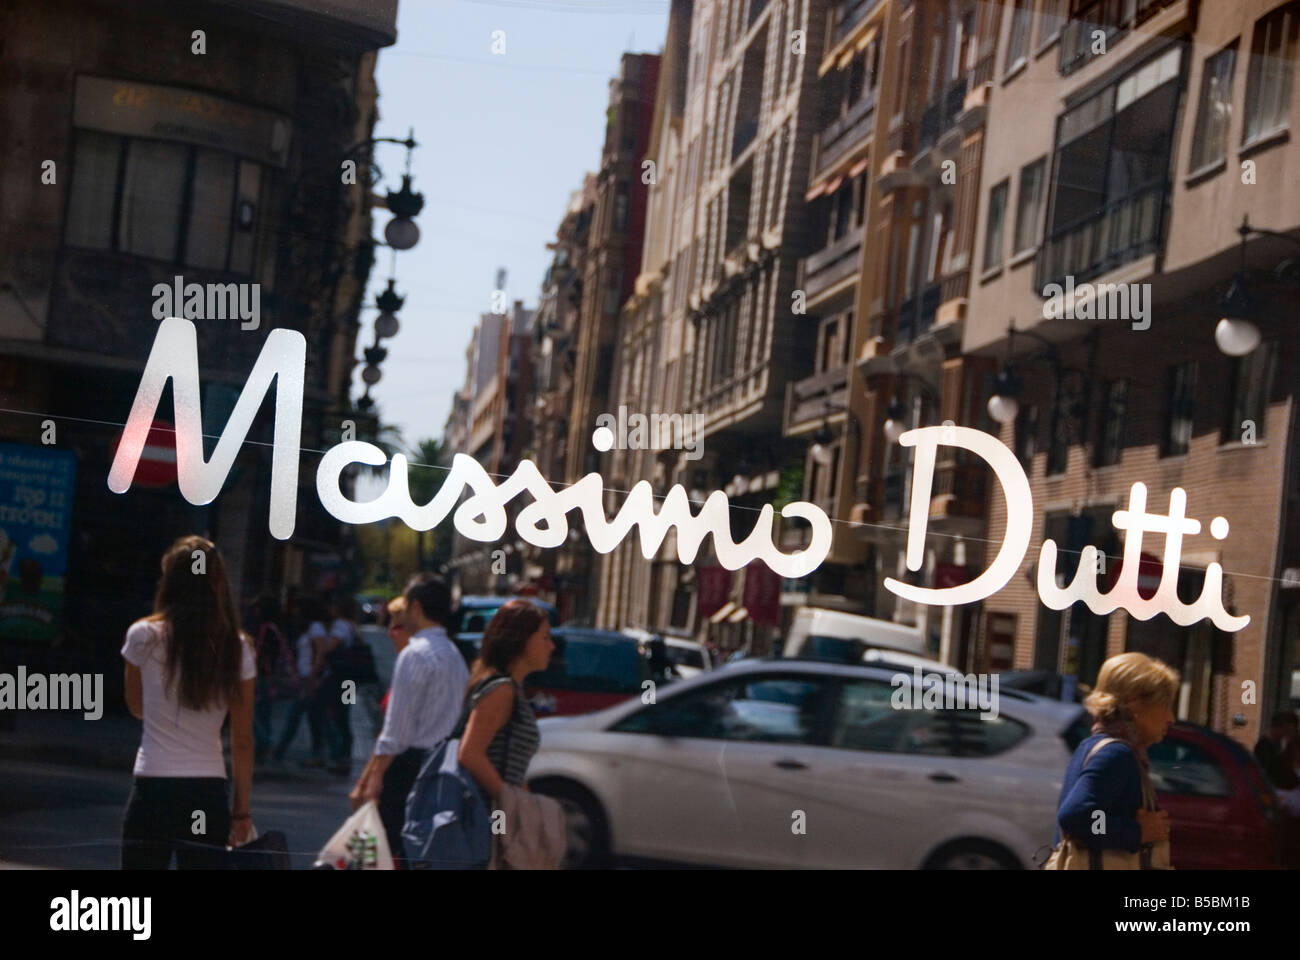 Shop window sign of Spanish high street fashion retail chain store Massimo Dutti owned by the INDITEX GROUP - Stock Image